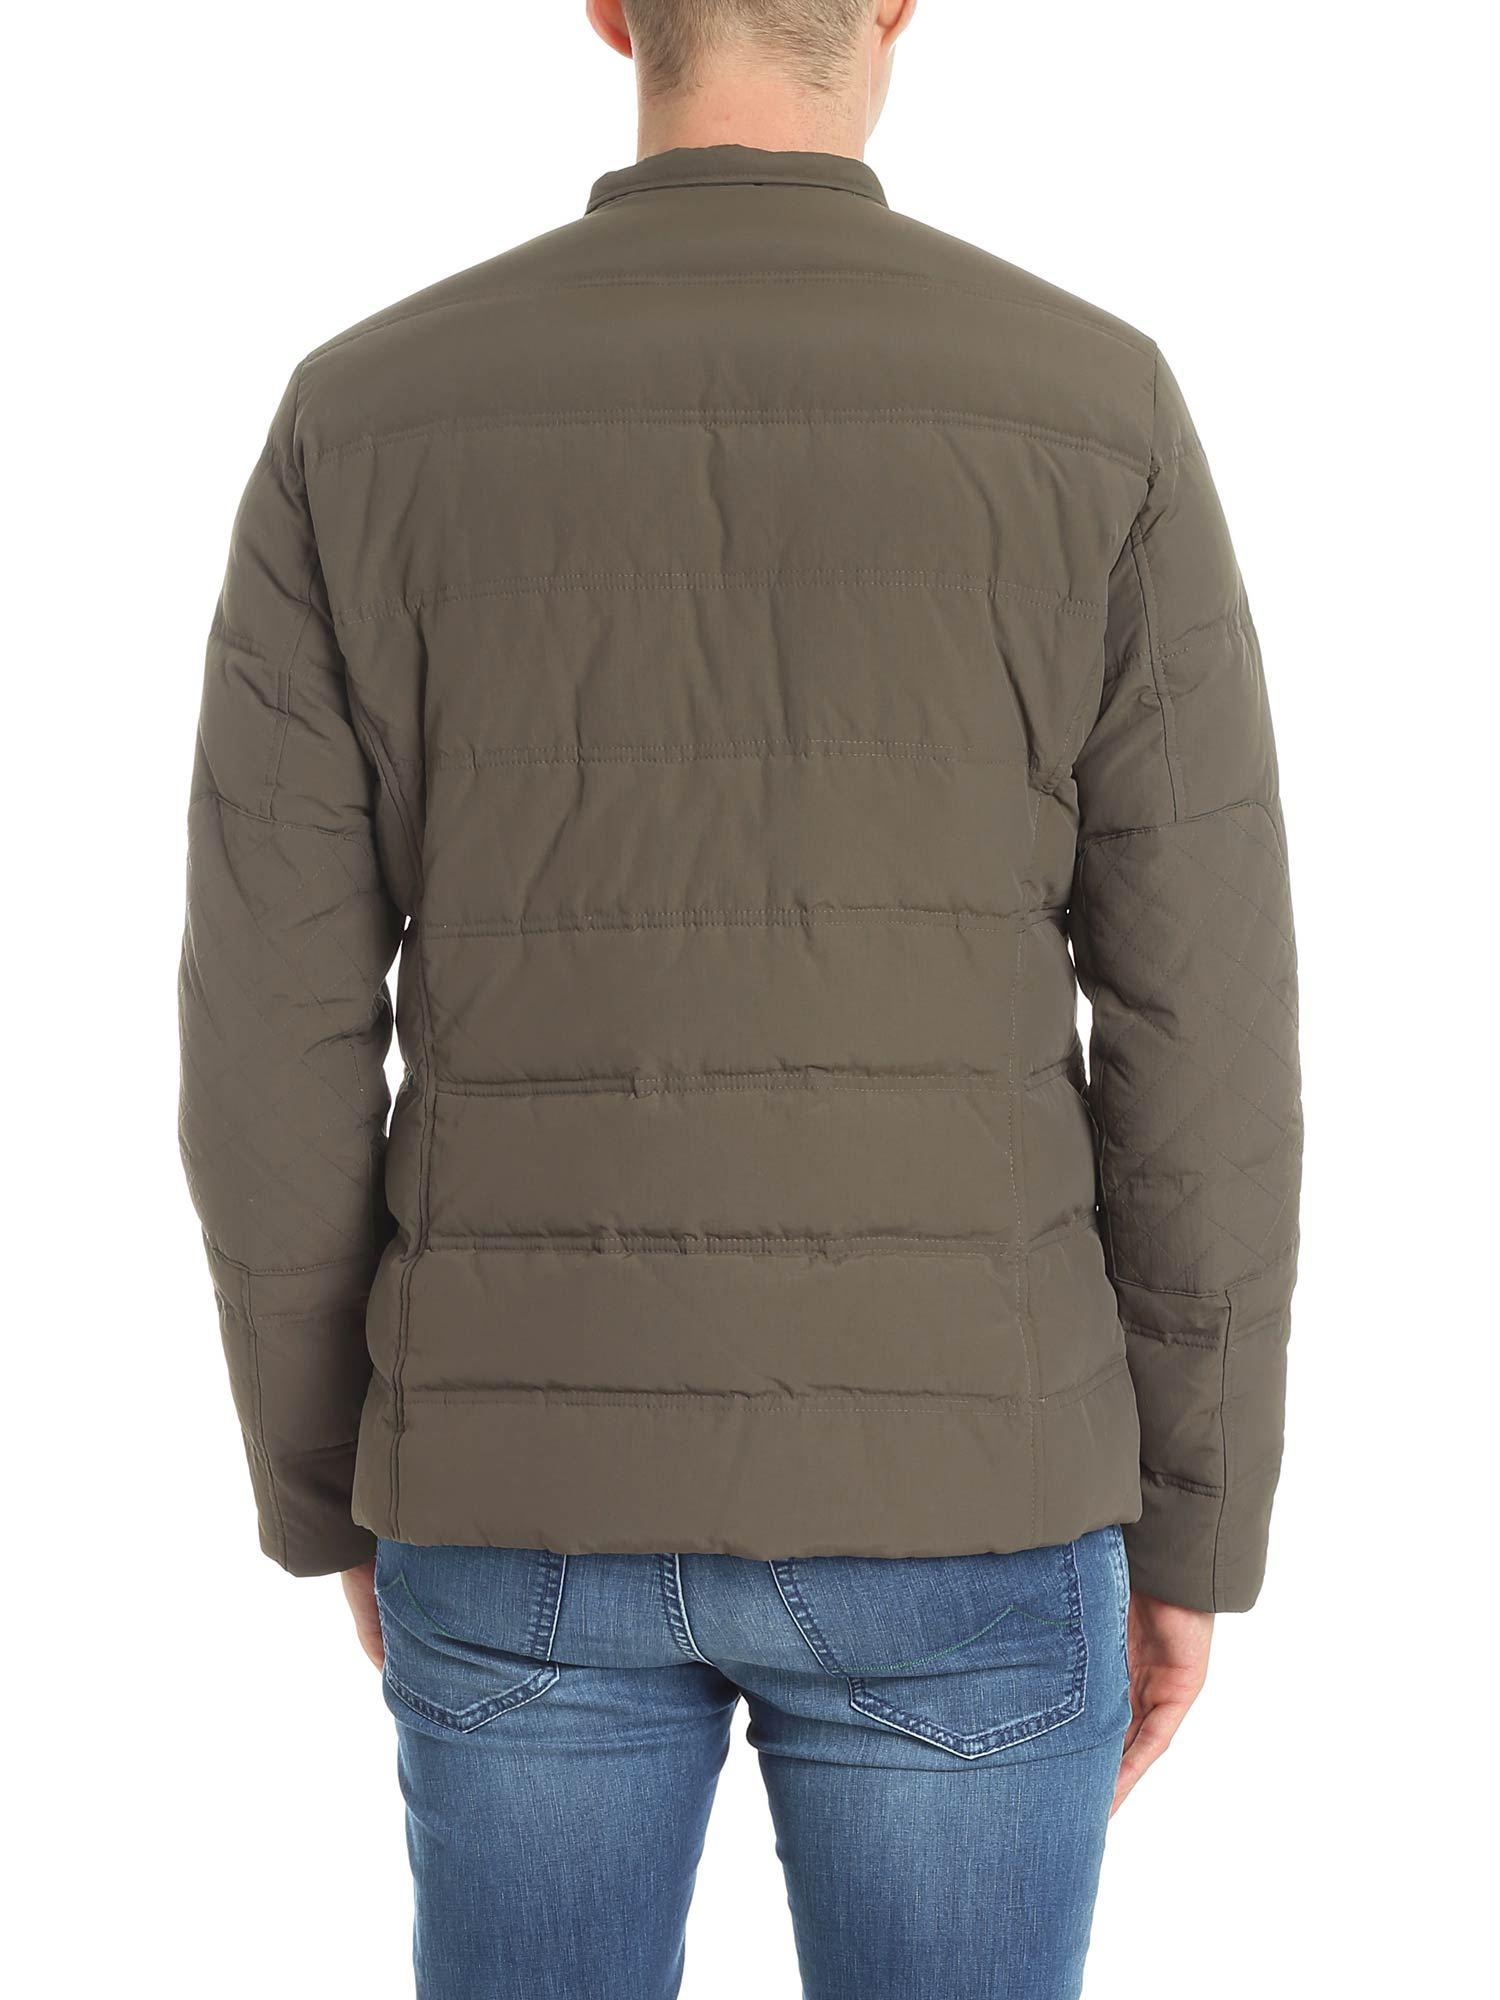 Colmar Synthetic Brown Quilted Jacket With Chest Pockets for Men